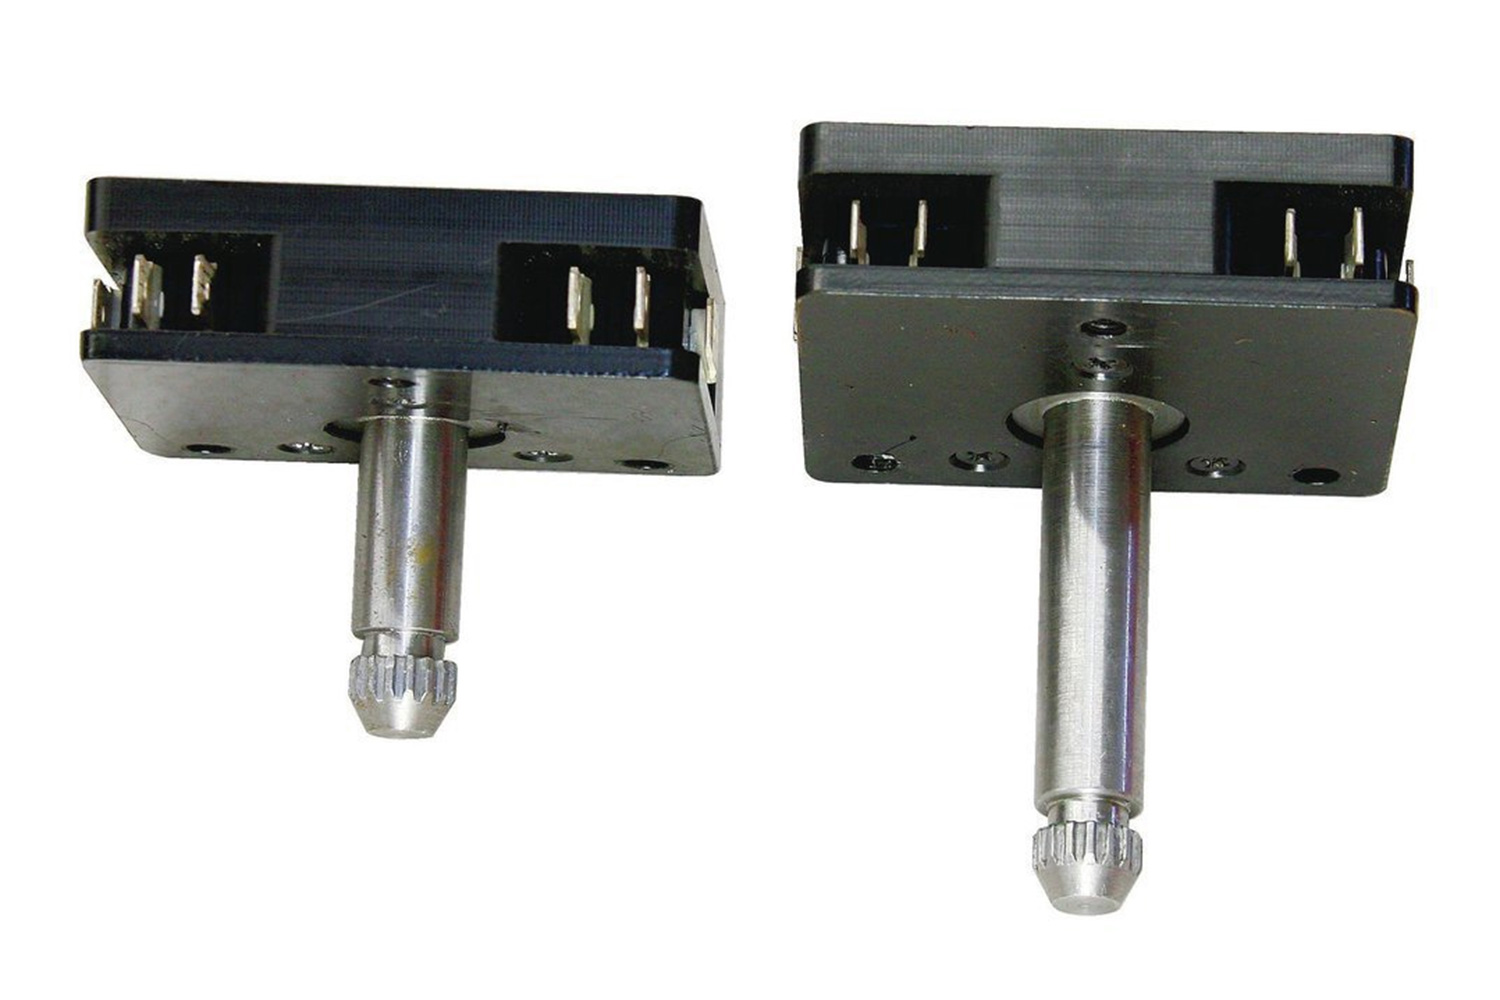 2. The power crank switches are available in two different shaft lengths for post-1950 GM vehicles: 15⁄16-inch and 21⁄8-inch. For the Ford guys, Electric-Life offers a switch that accepts post-1950 splined handles as well as a universal square splined switch for those early applications.